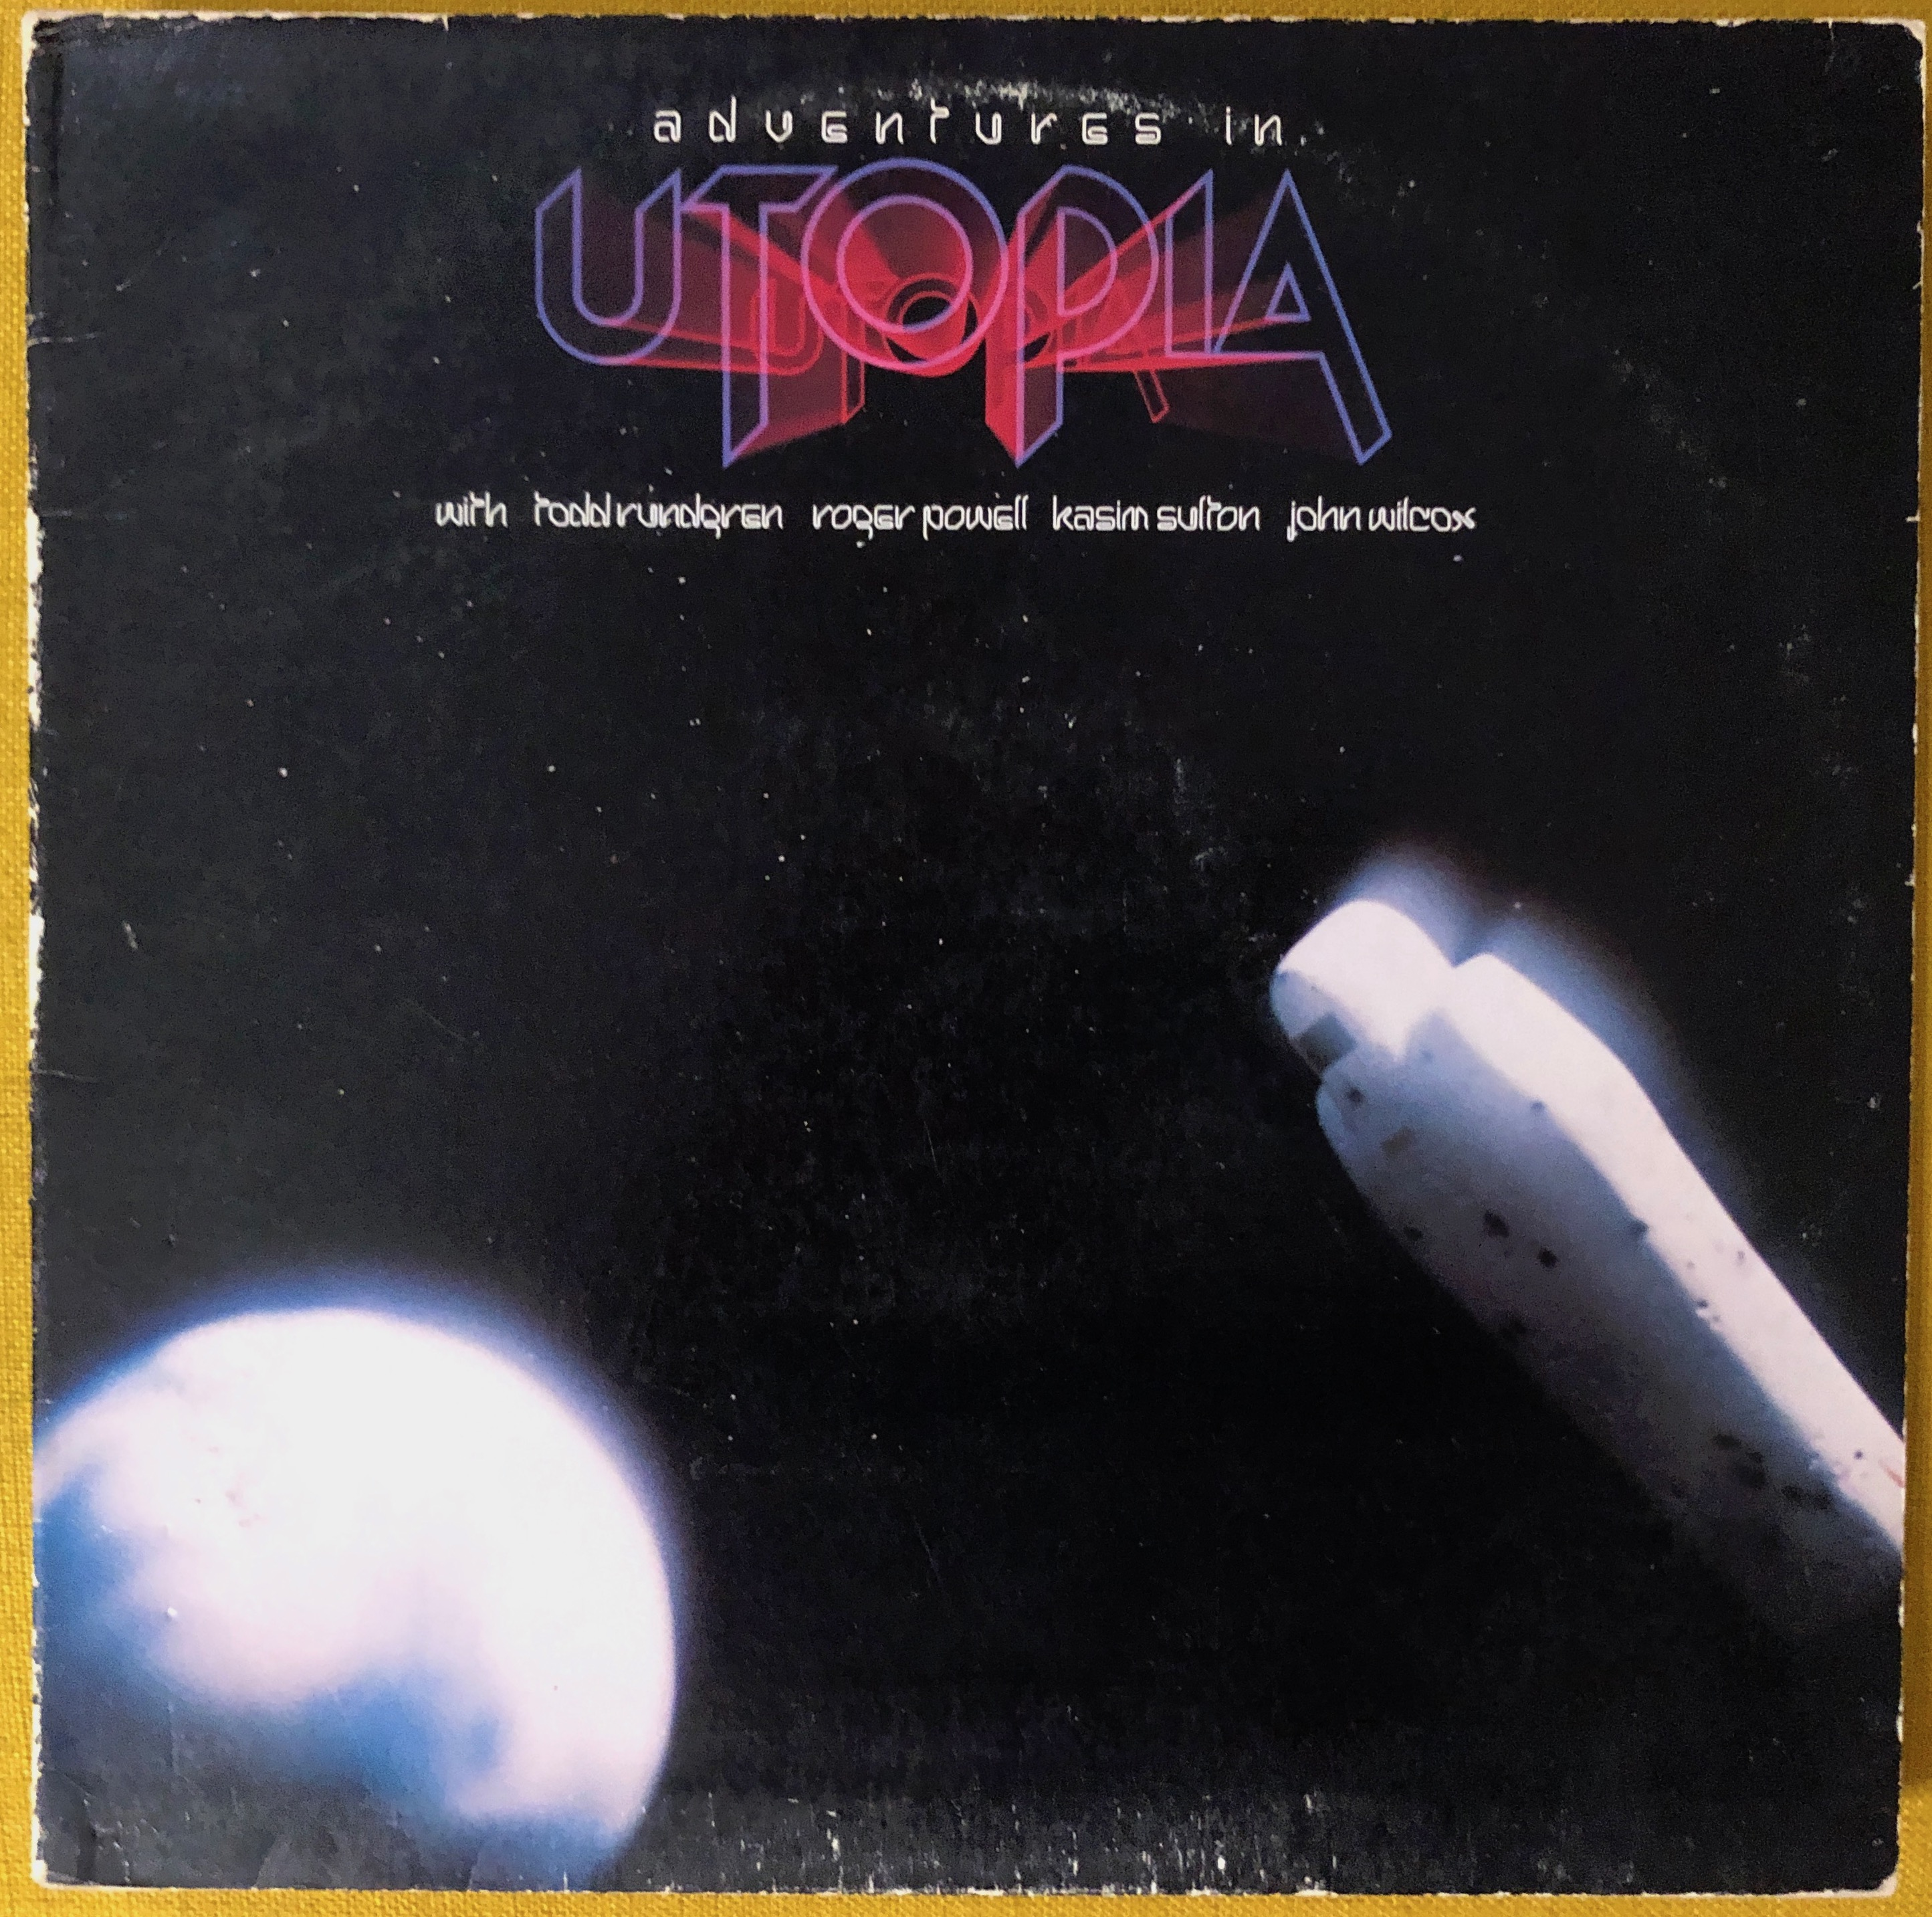 Utopia – Adventures In Utopia